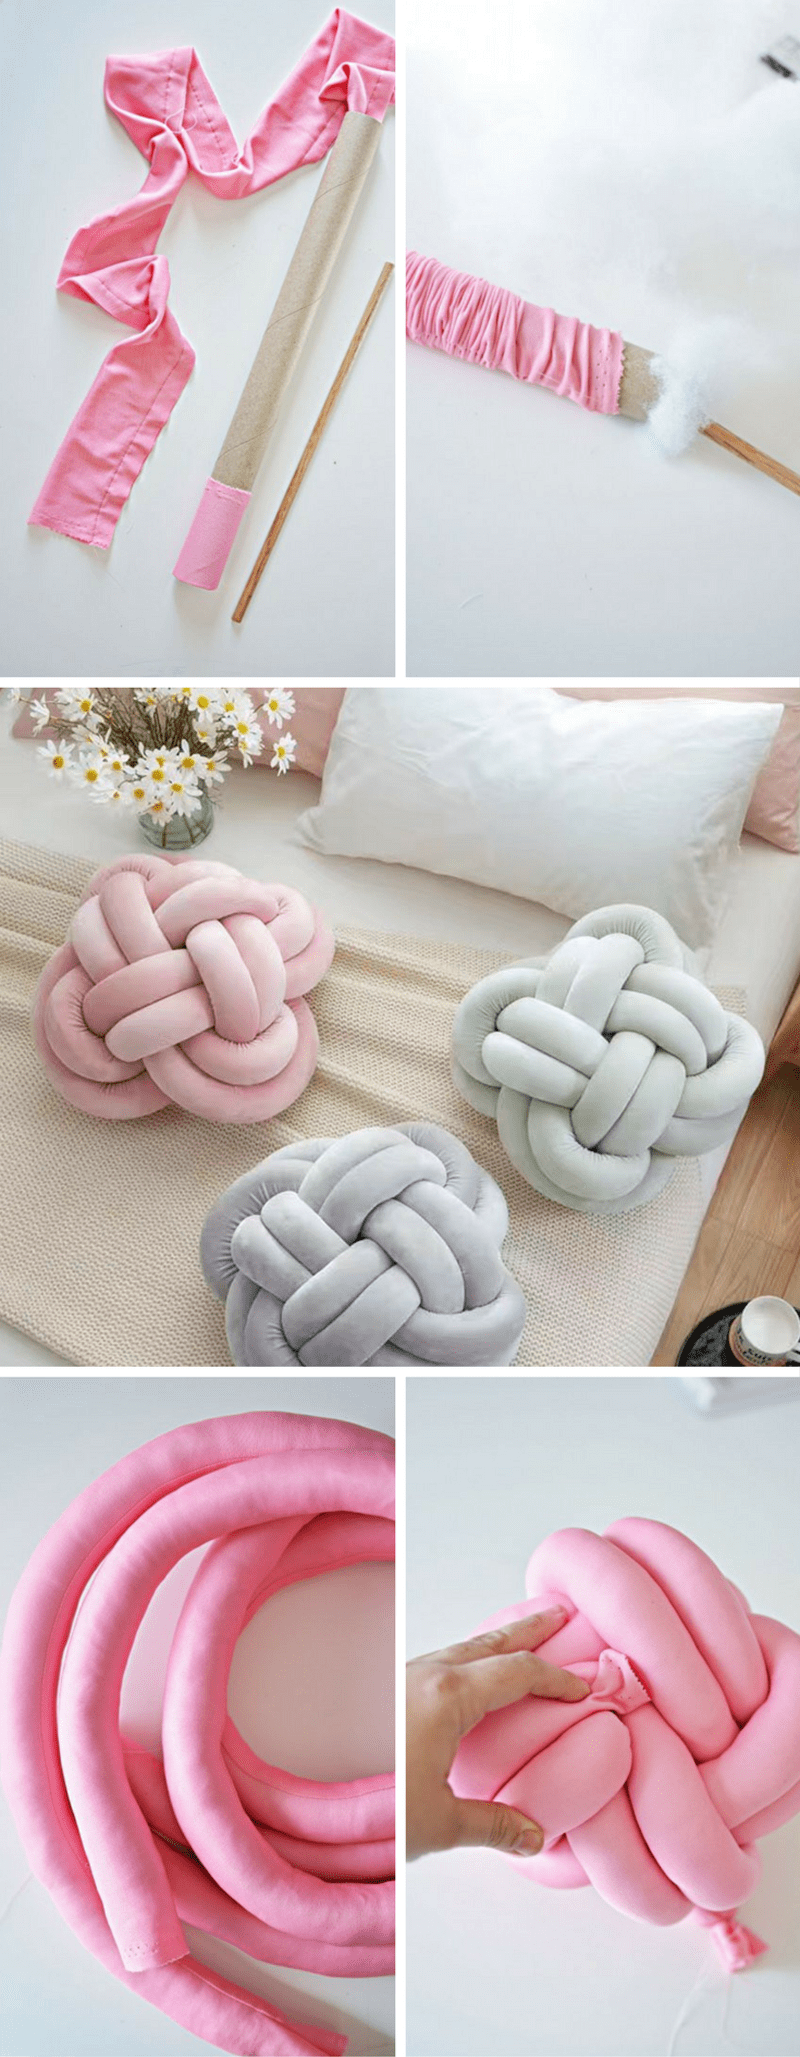 5 Etsy Shops To Order Braided Crib Bumper Right Now